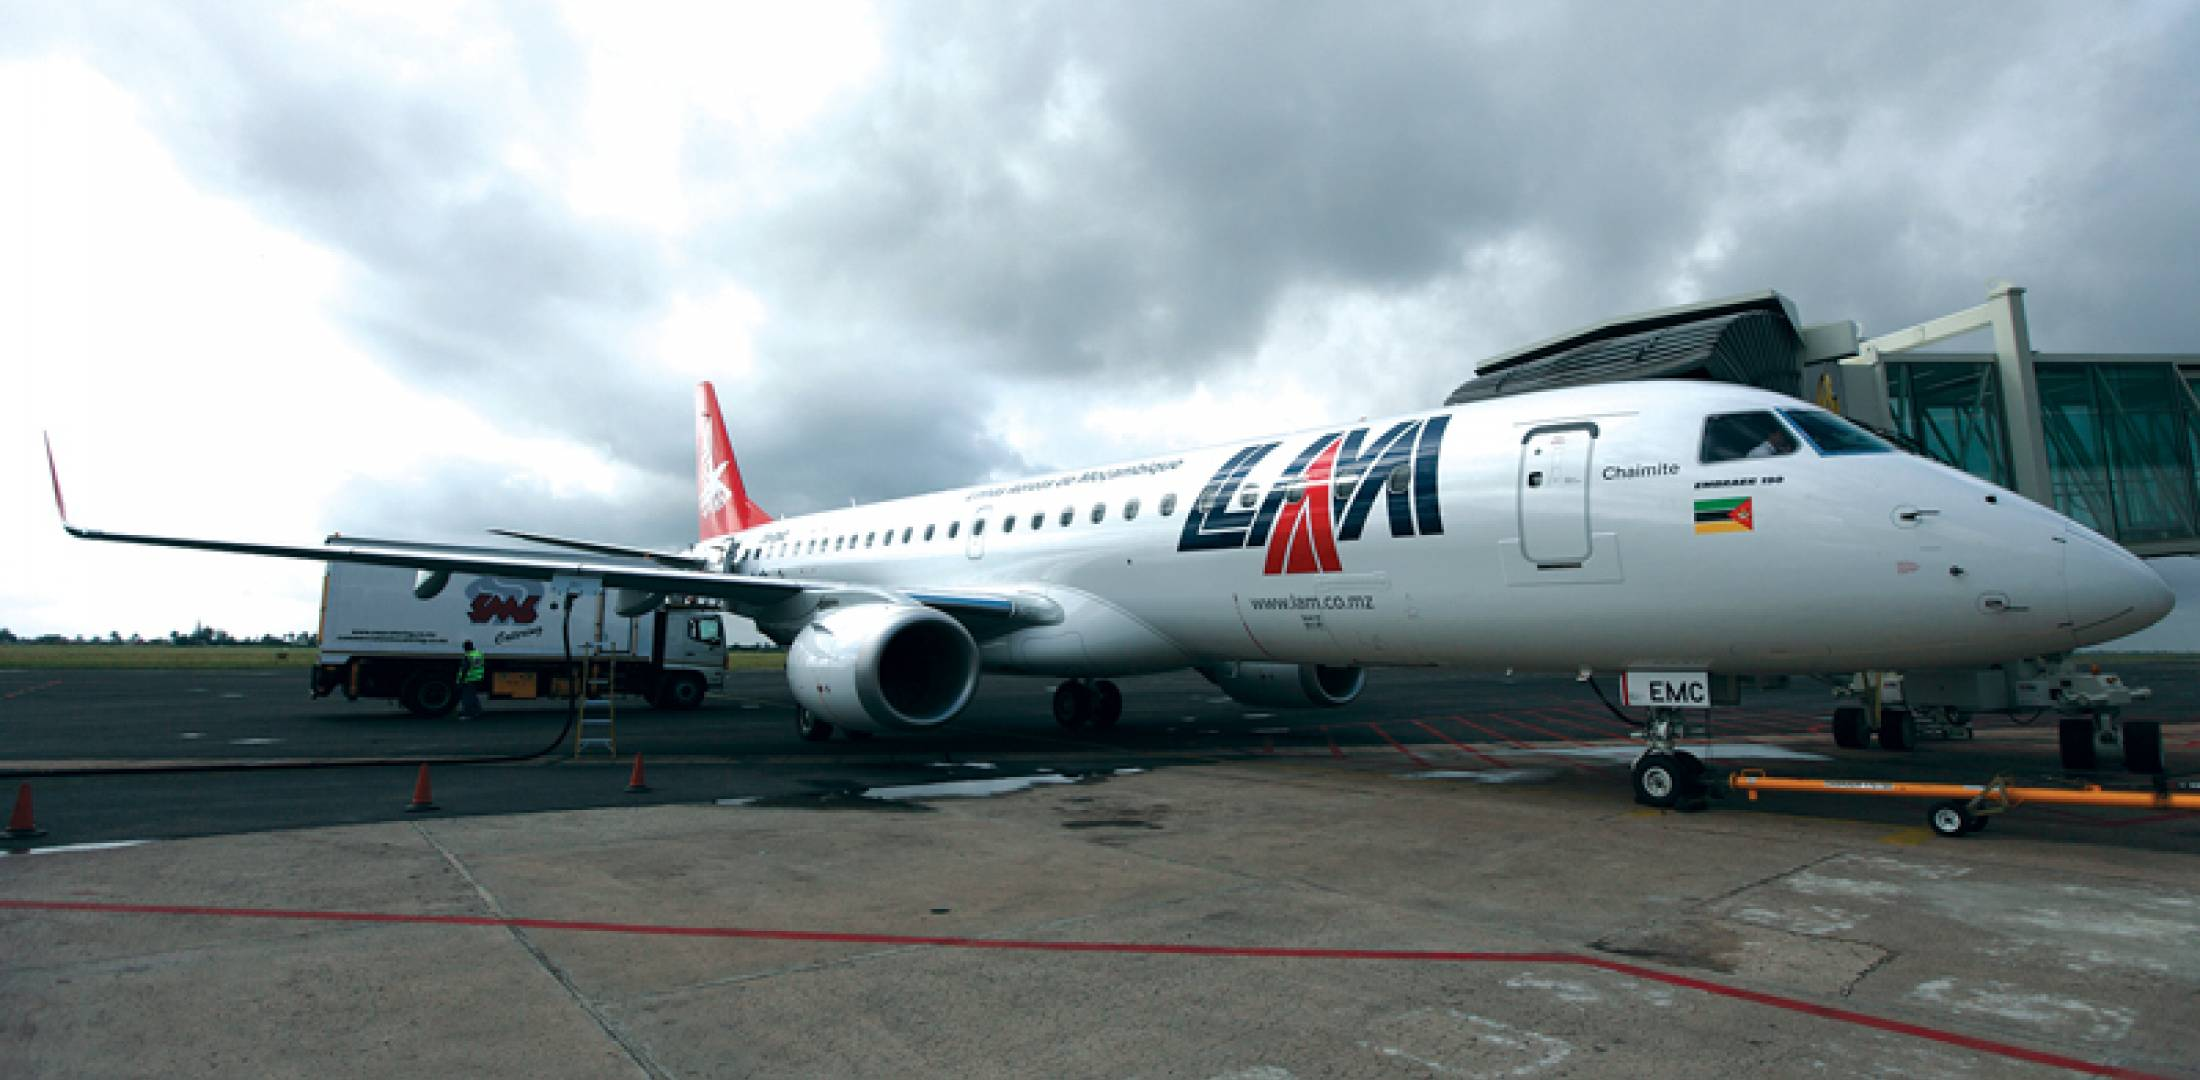 LAM Embraer E190s based at Mozambique's Maputo International Airport have replaced Boeing 737-200s.